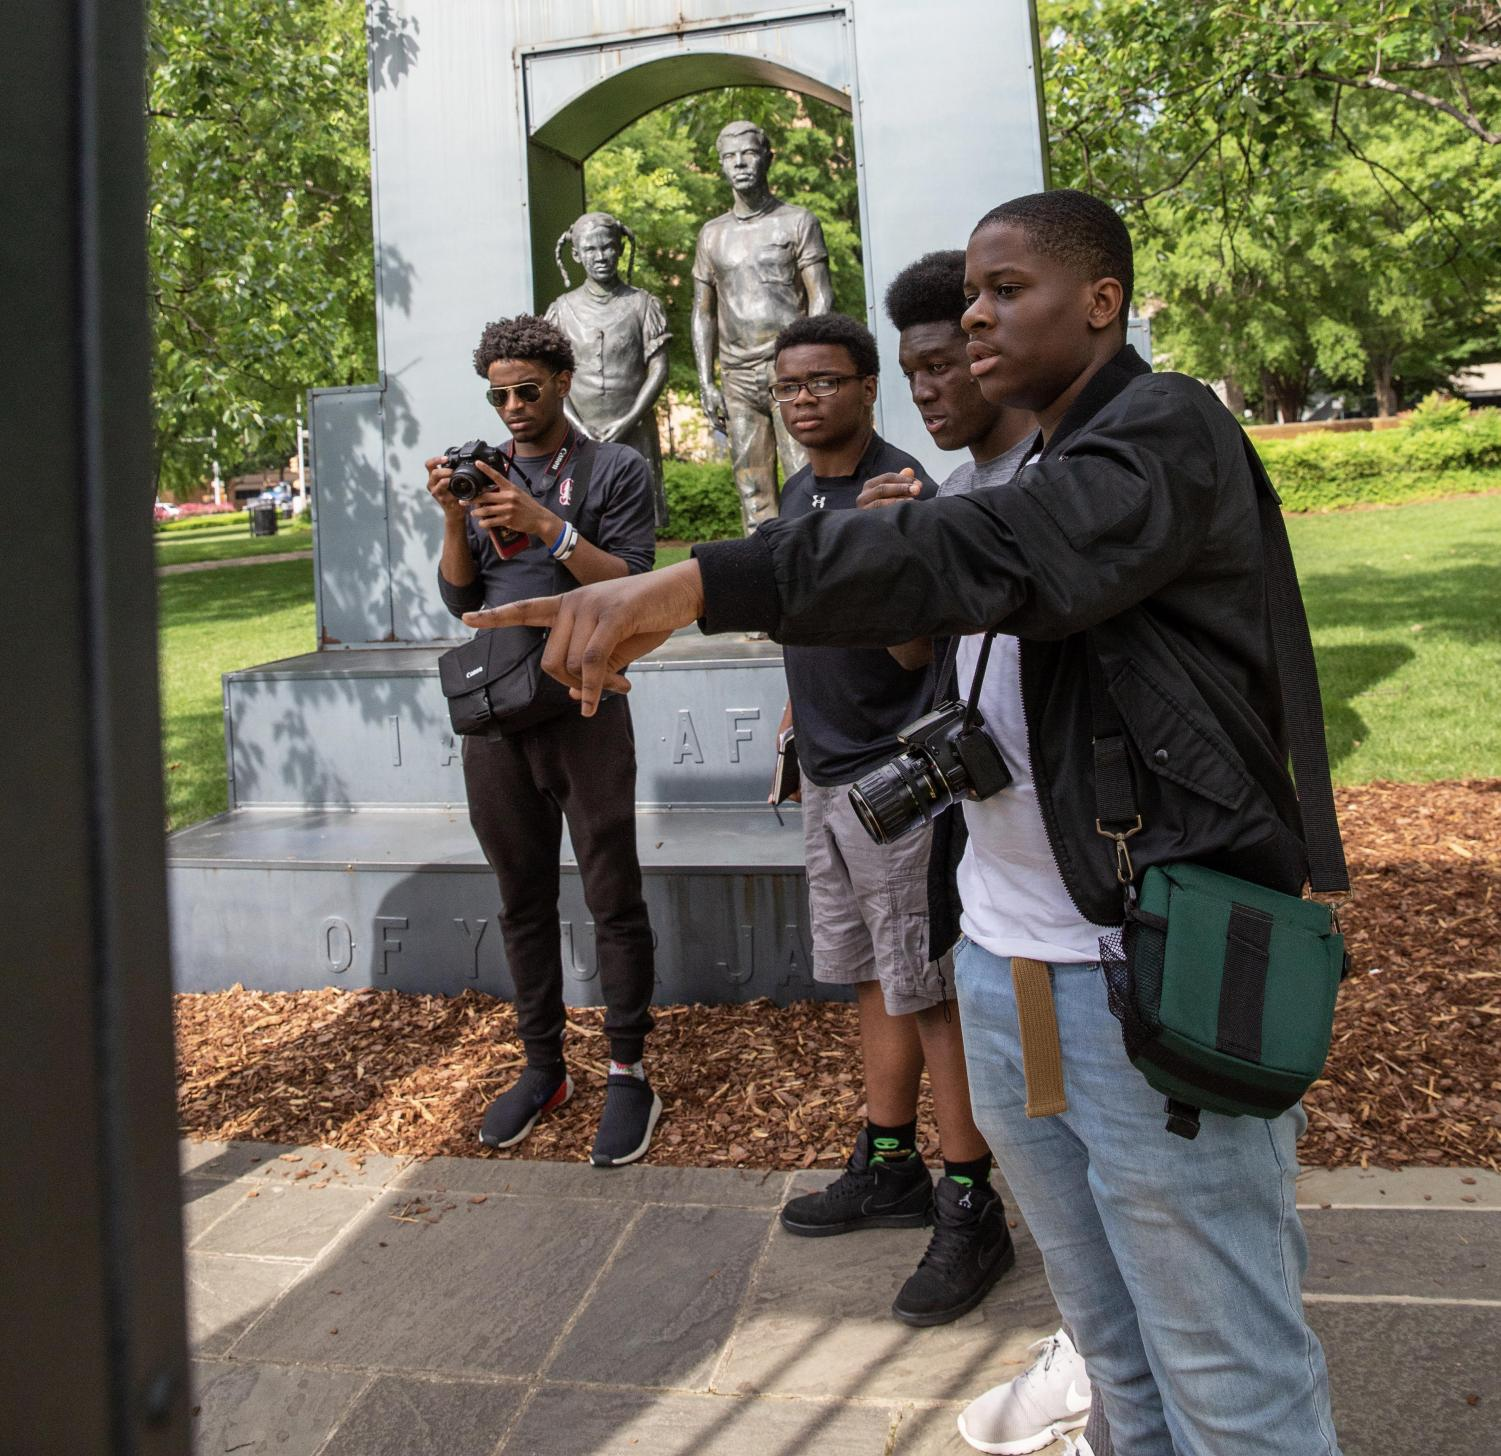 During a visit to the South, SBP students toured iconic sites in the Civil Rights movement, including statues in Kelly Ingram Park.